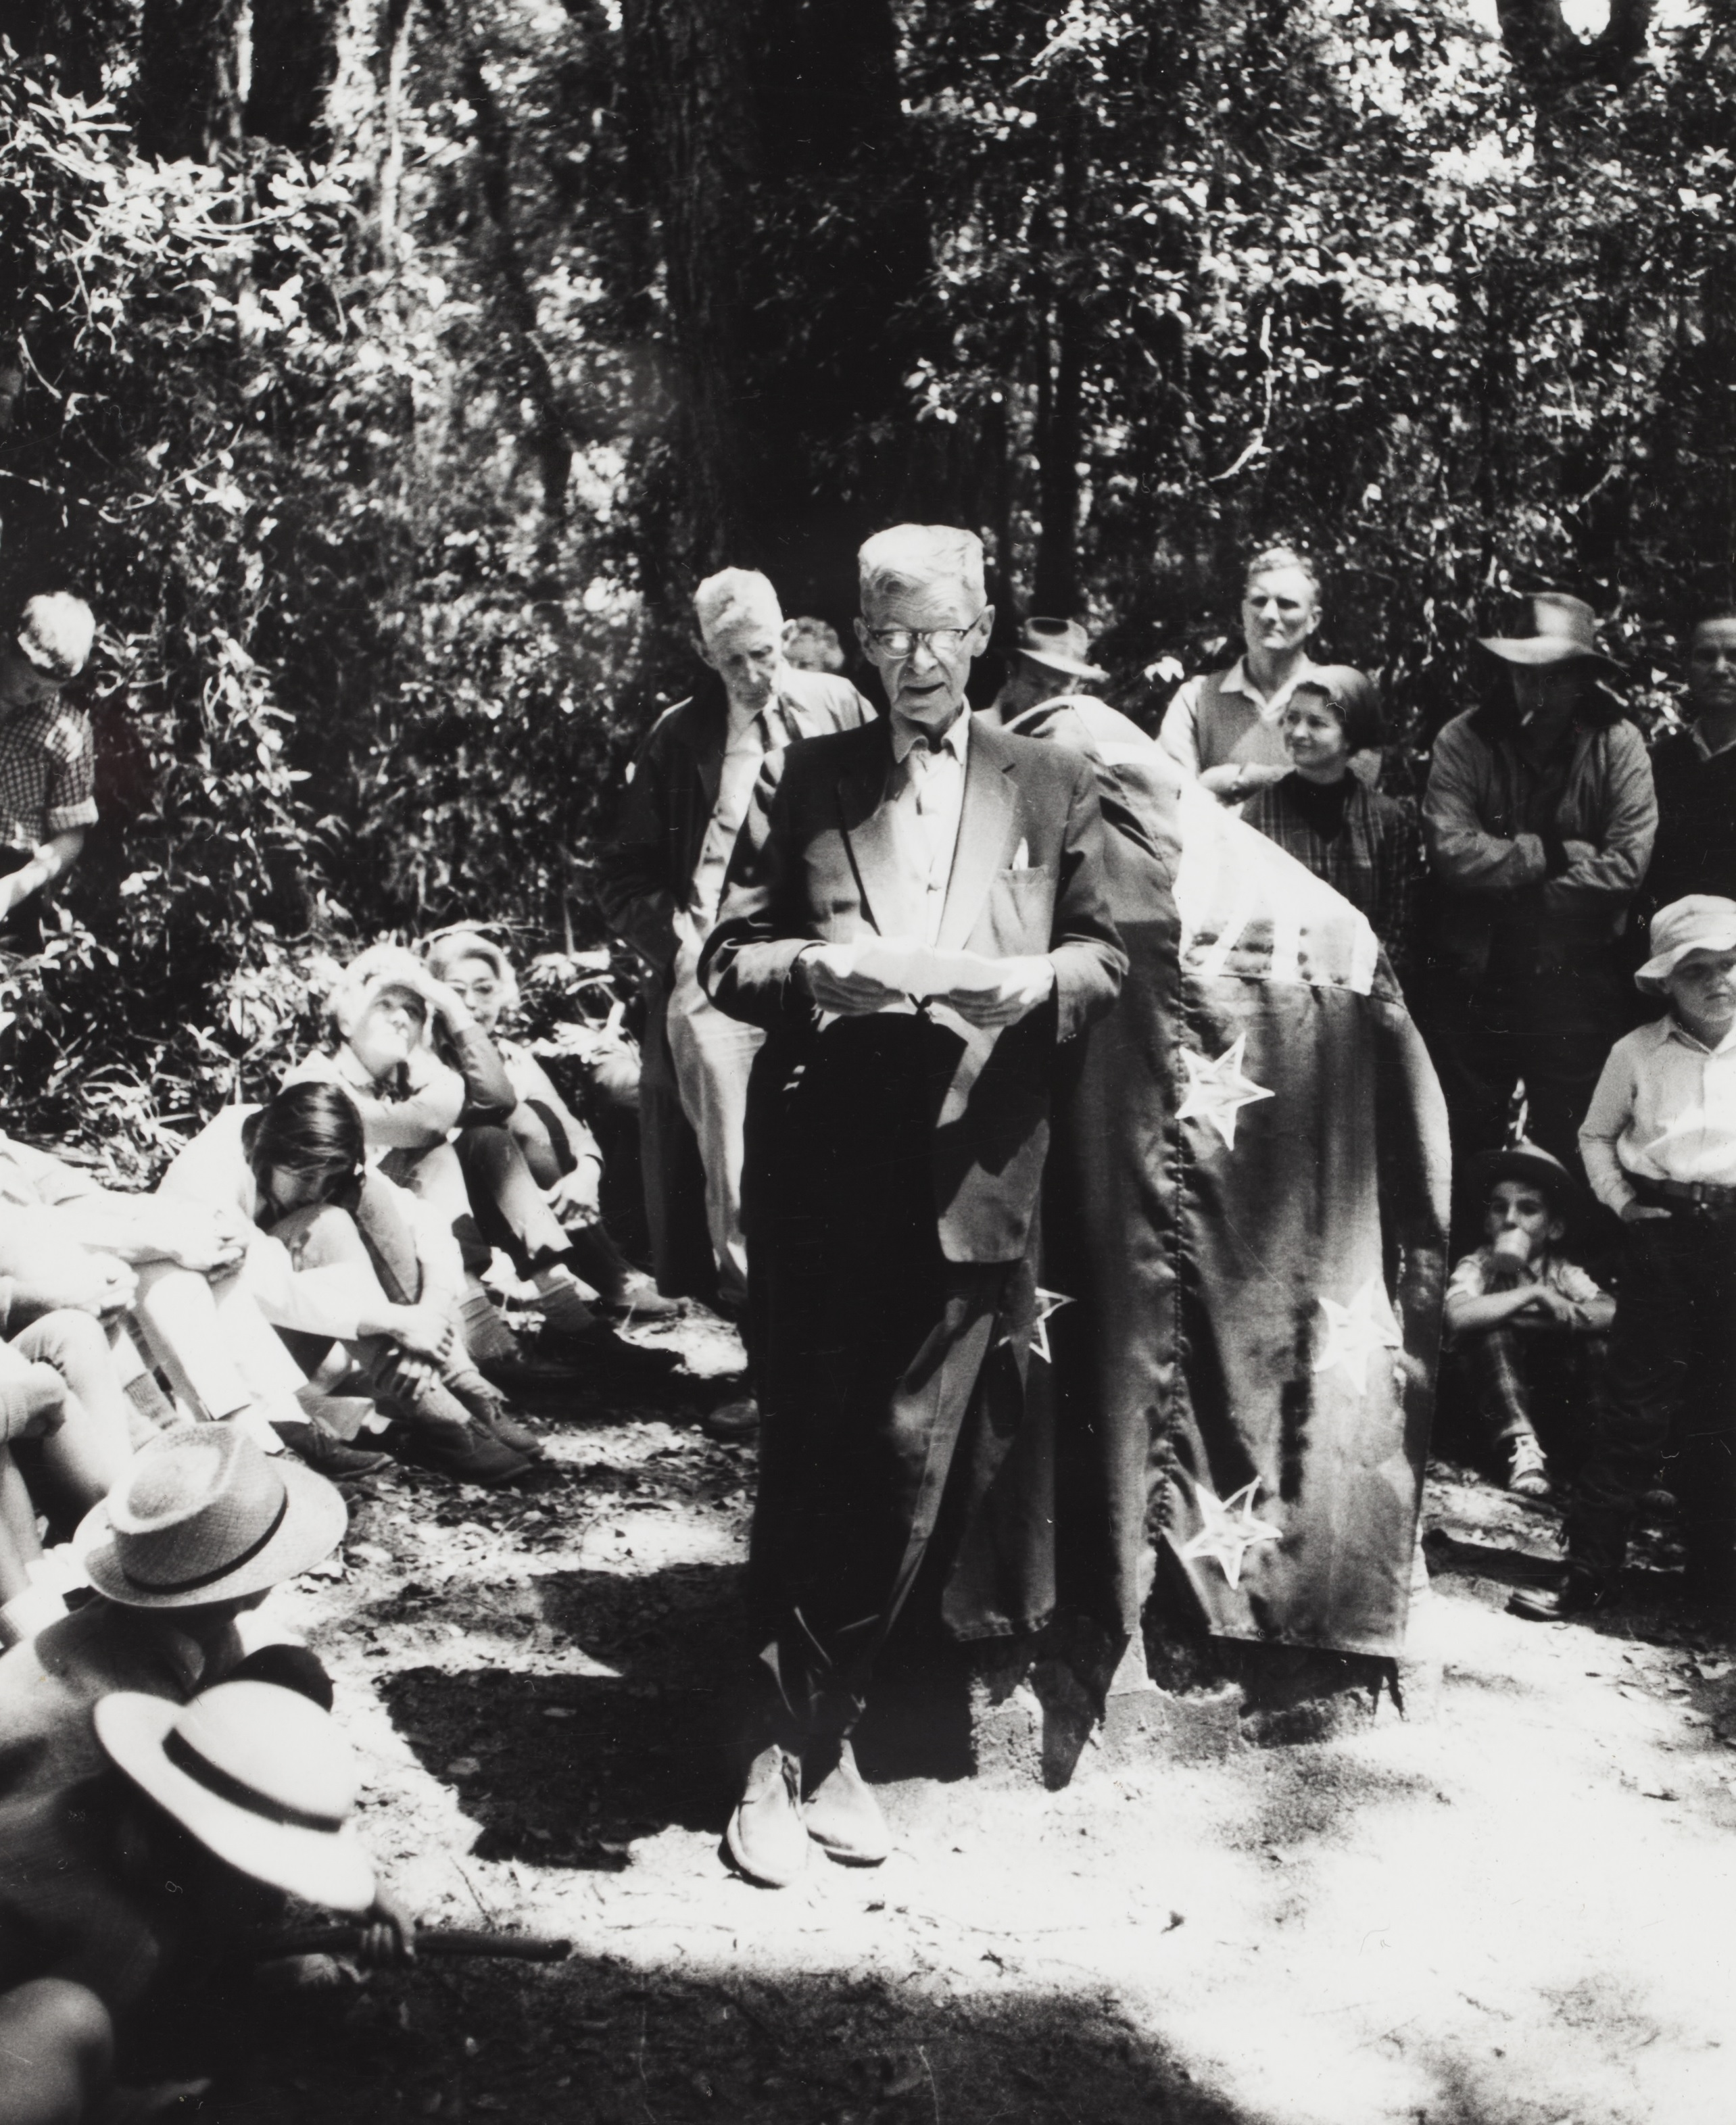 Chisholm unveiling a cairn at one of his favourite birdwatching locations: Mt Bithongabel in the Lamington National Park